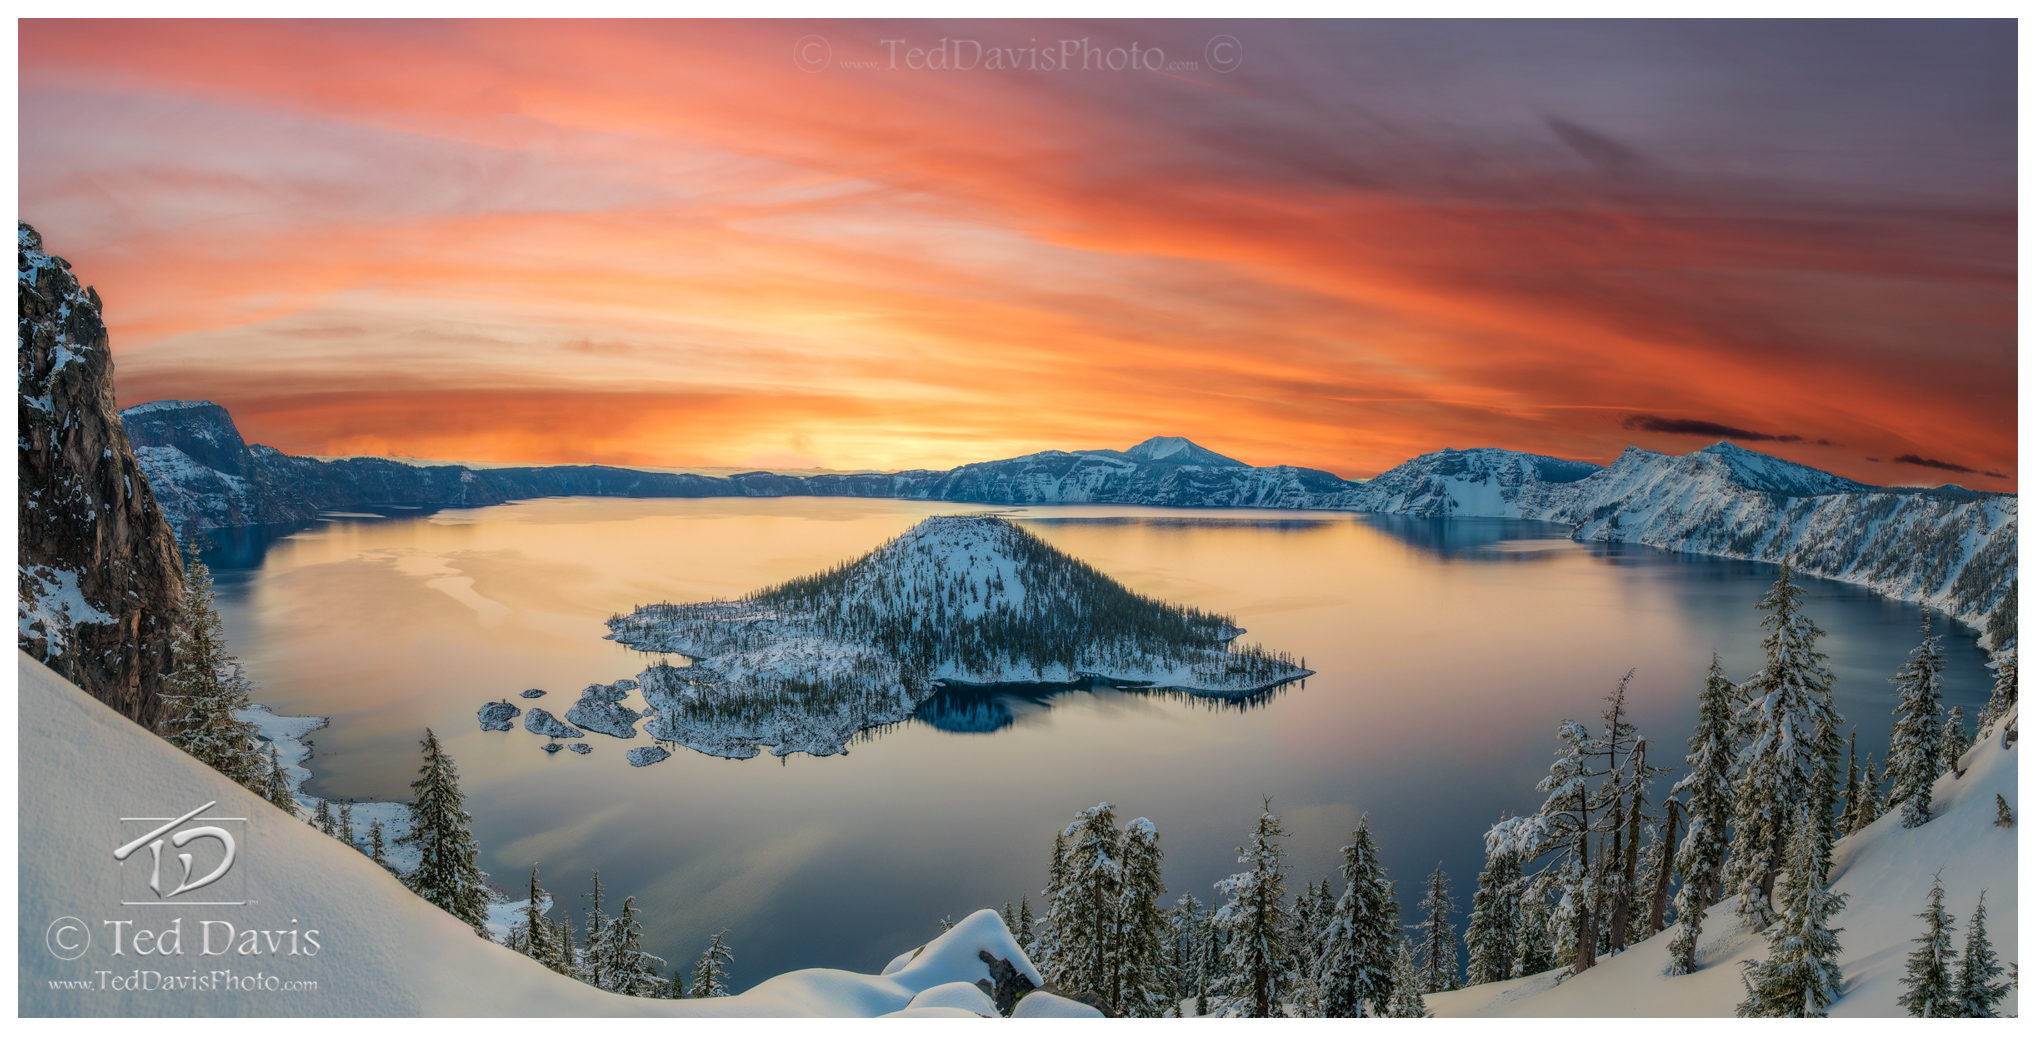 photograph, art, landscape, travel, sunrise, sunset, water, mountain, crater, lake, snow, winter, photo